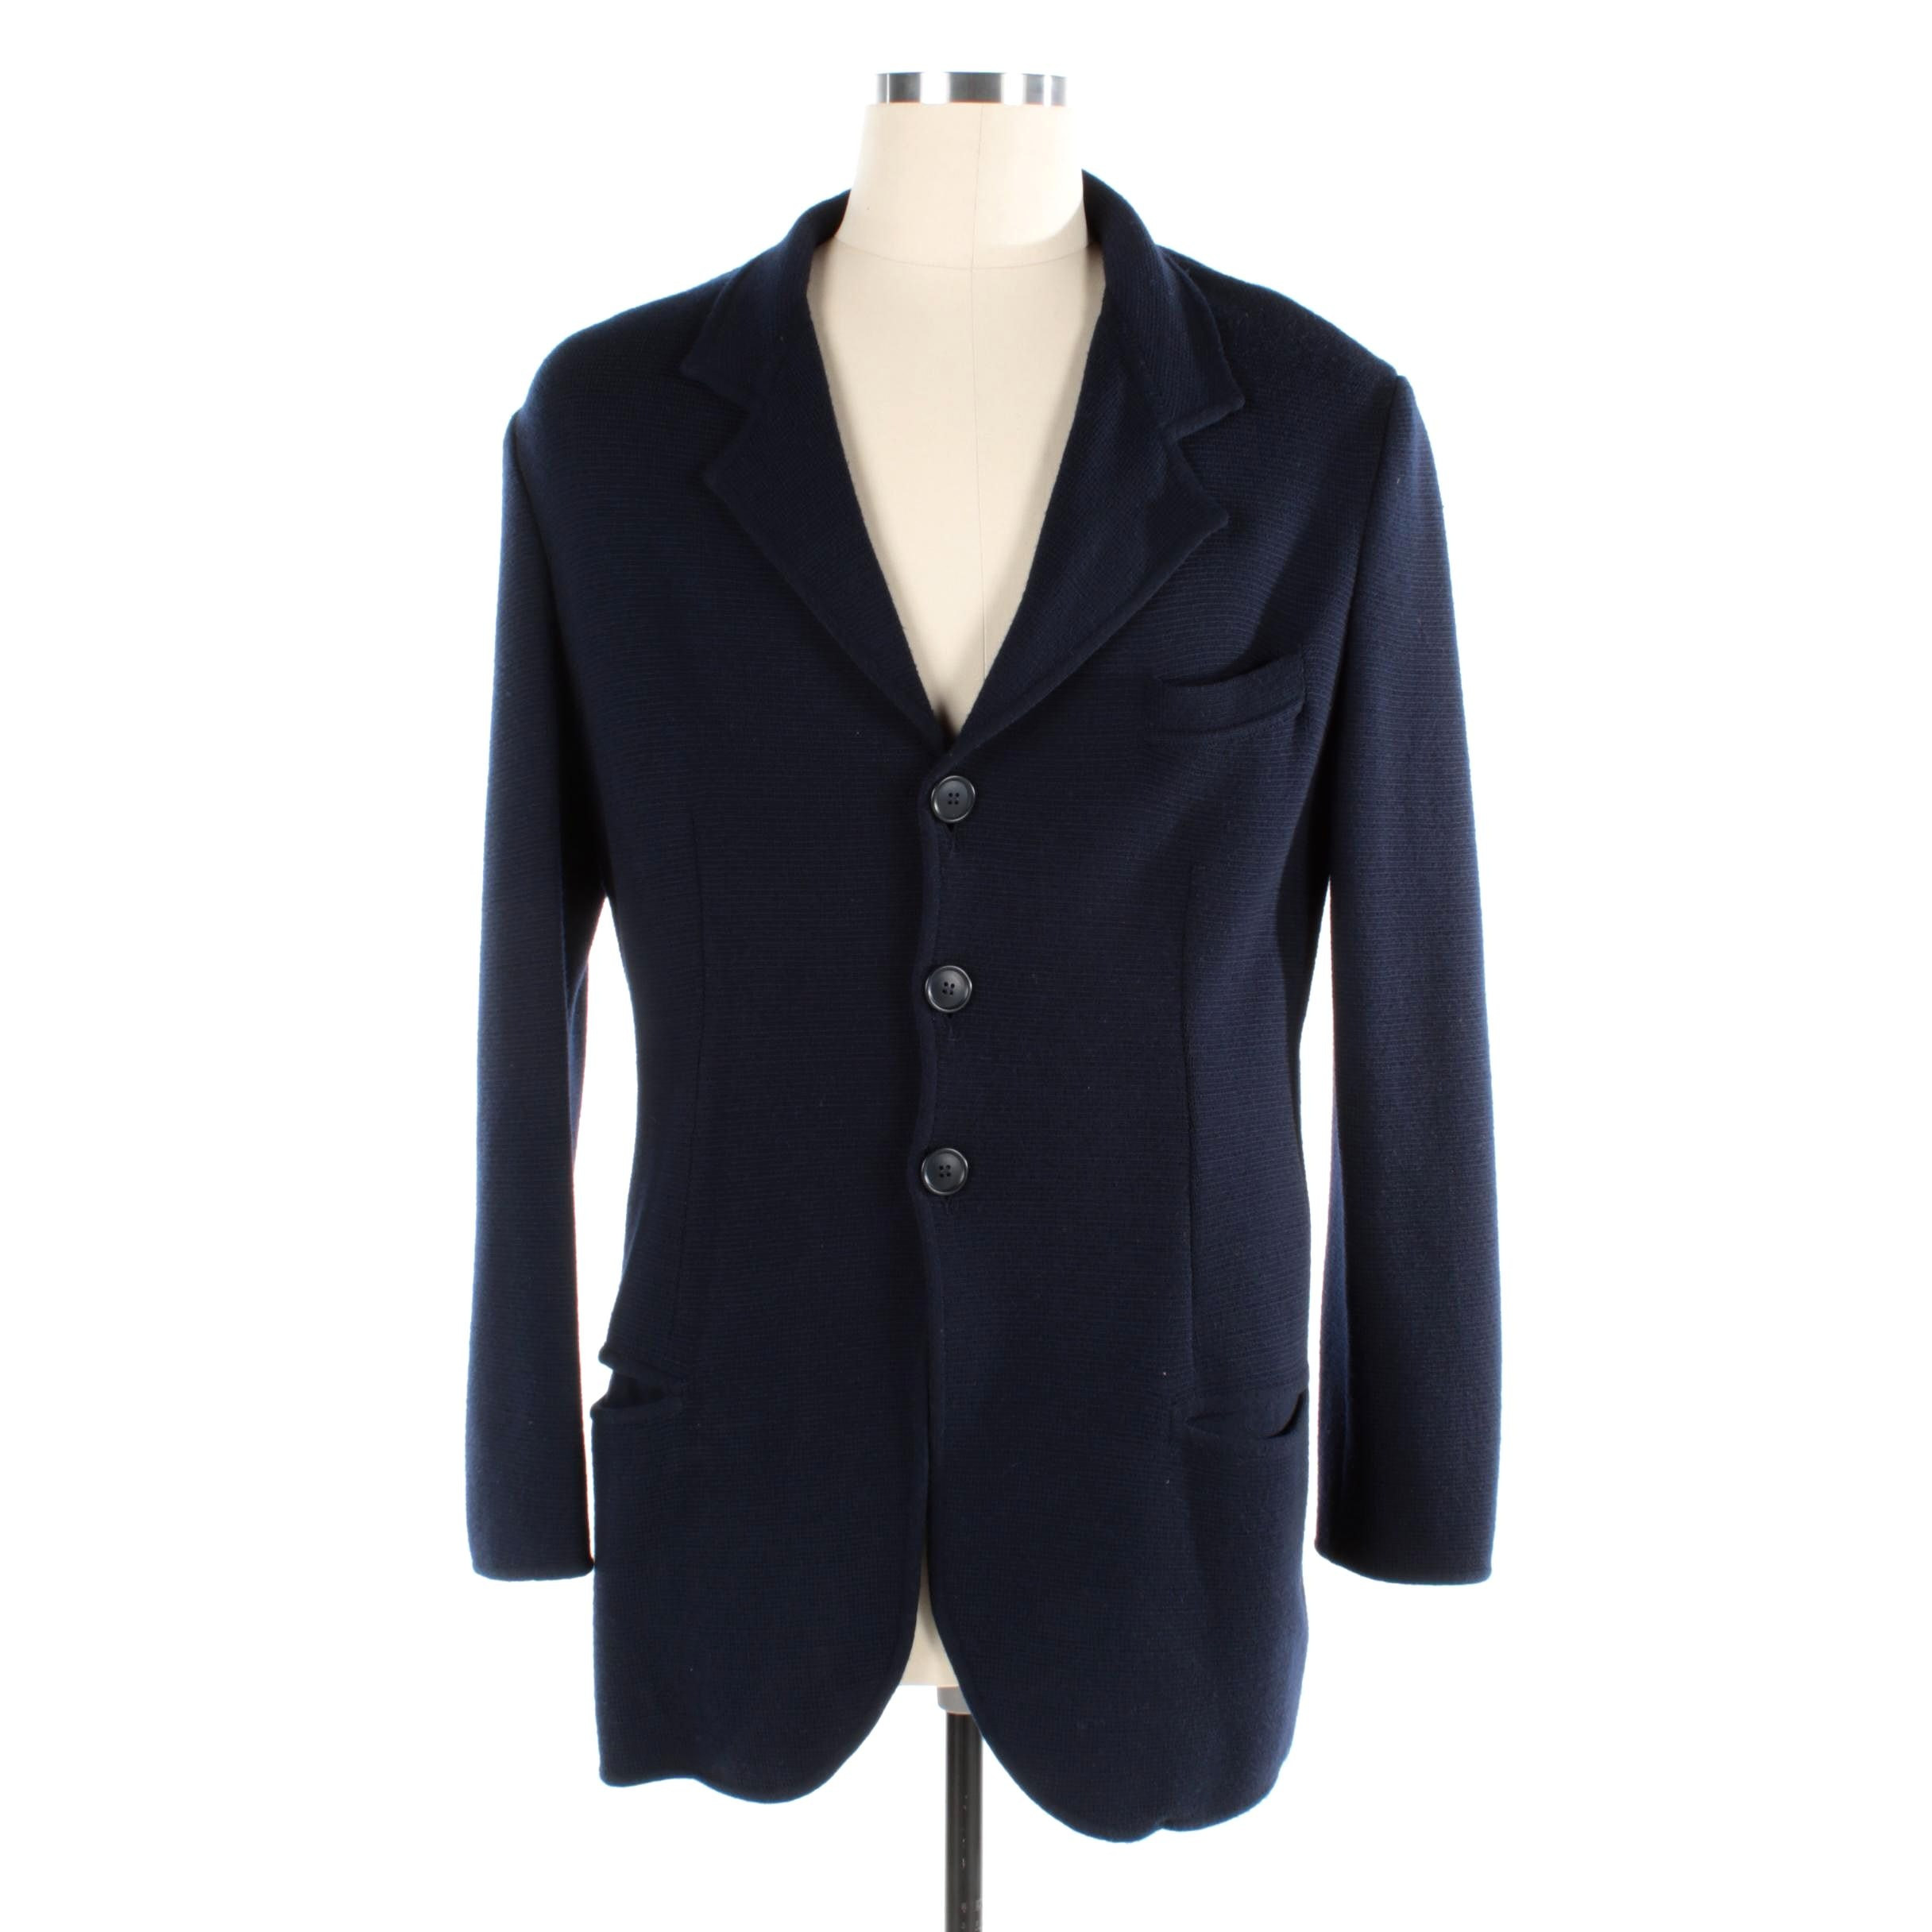 Men's Giorgio Armani Knit Navy Wool Sport Coat